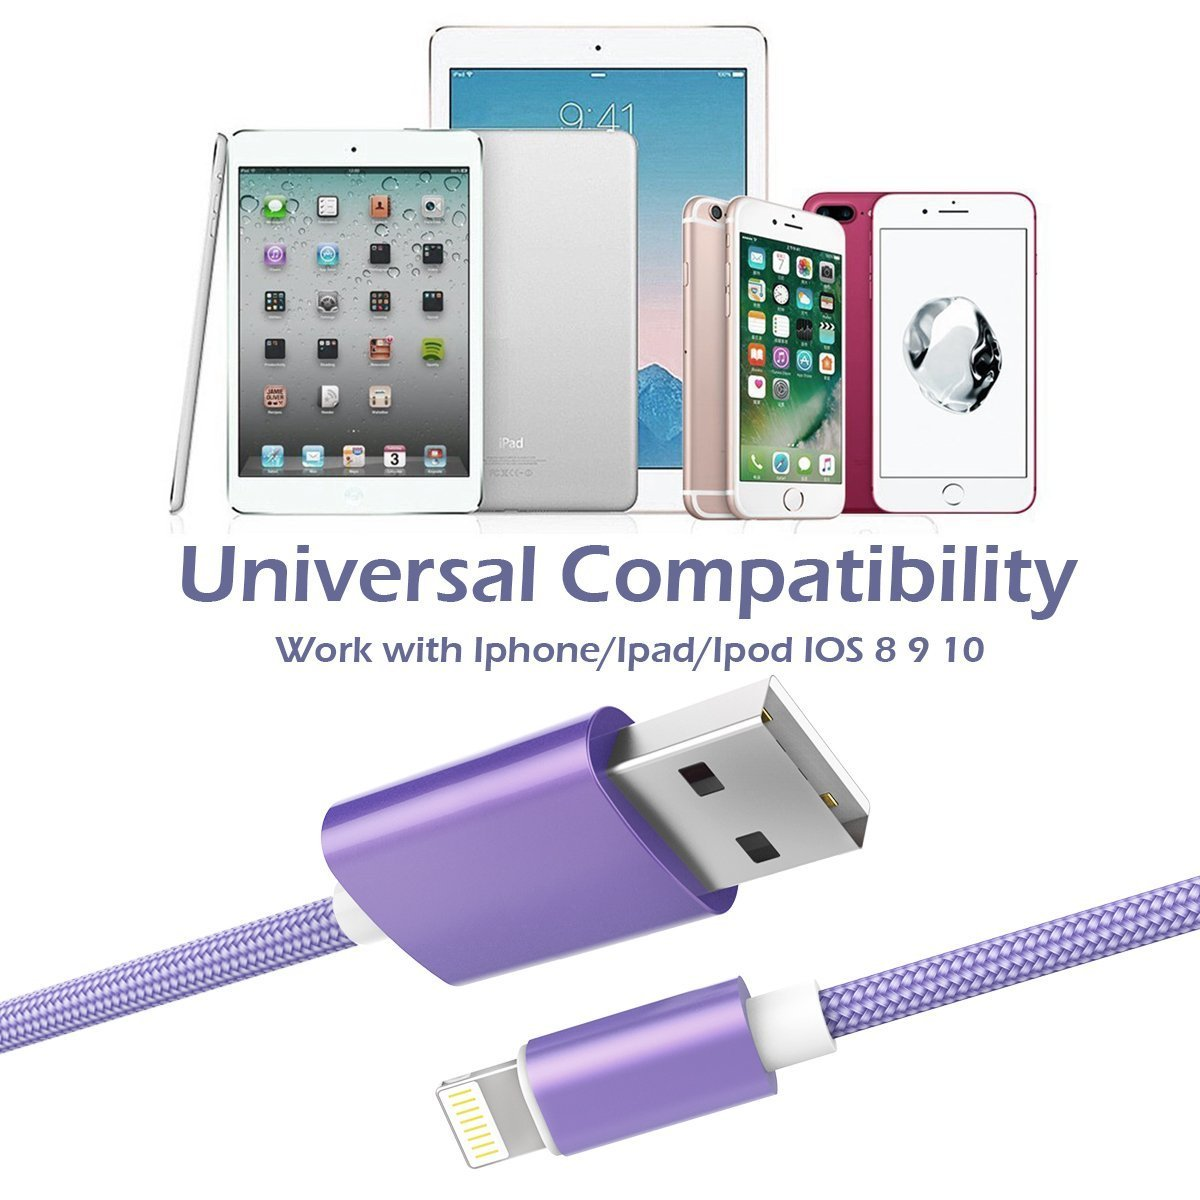 KidKer 4 Pack Lightning iPhone Charger Cables 3ft 3ft 6ft 10ft USB Chagring Certified Nylon Braided Cord Short for iPhone 7 Plus 6S 6 5 5S 5C SE iPad Pro Air Mini 2 3 4 iPod Touch (Purple ( 4 Pack )) by KidKer (Image #7)